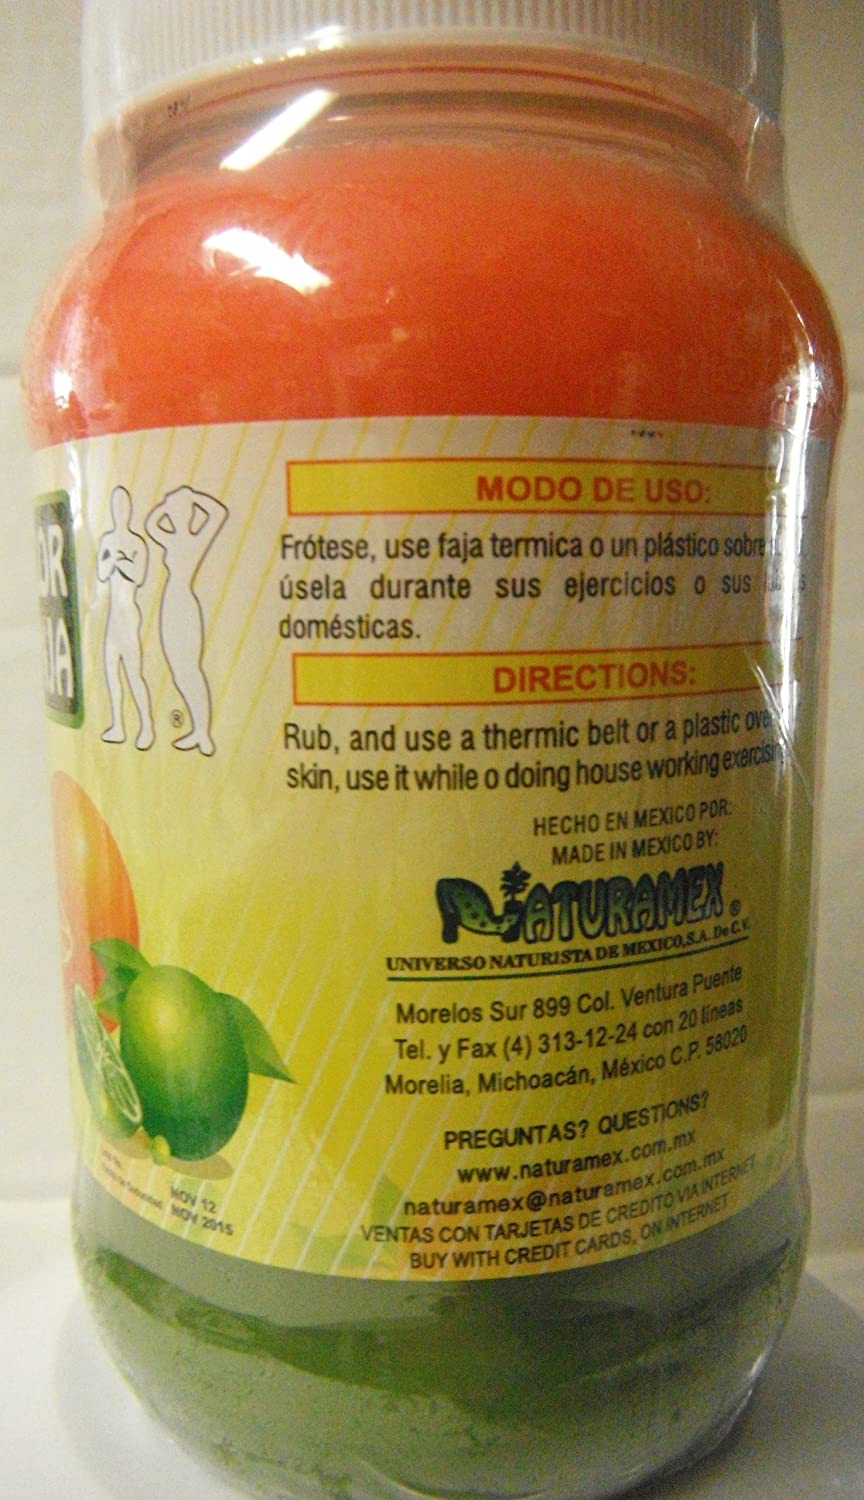 Amazon.com: Crema Bicolor Limon-toronja Bote Grande De 18 Oz: Health & Personal Care